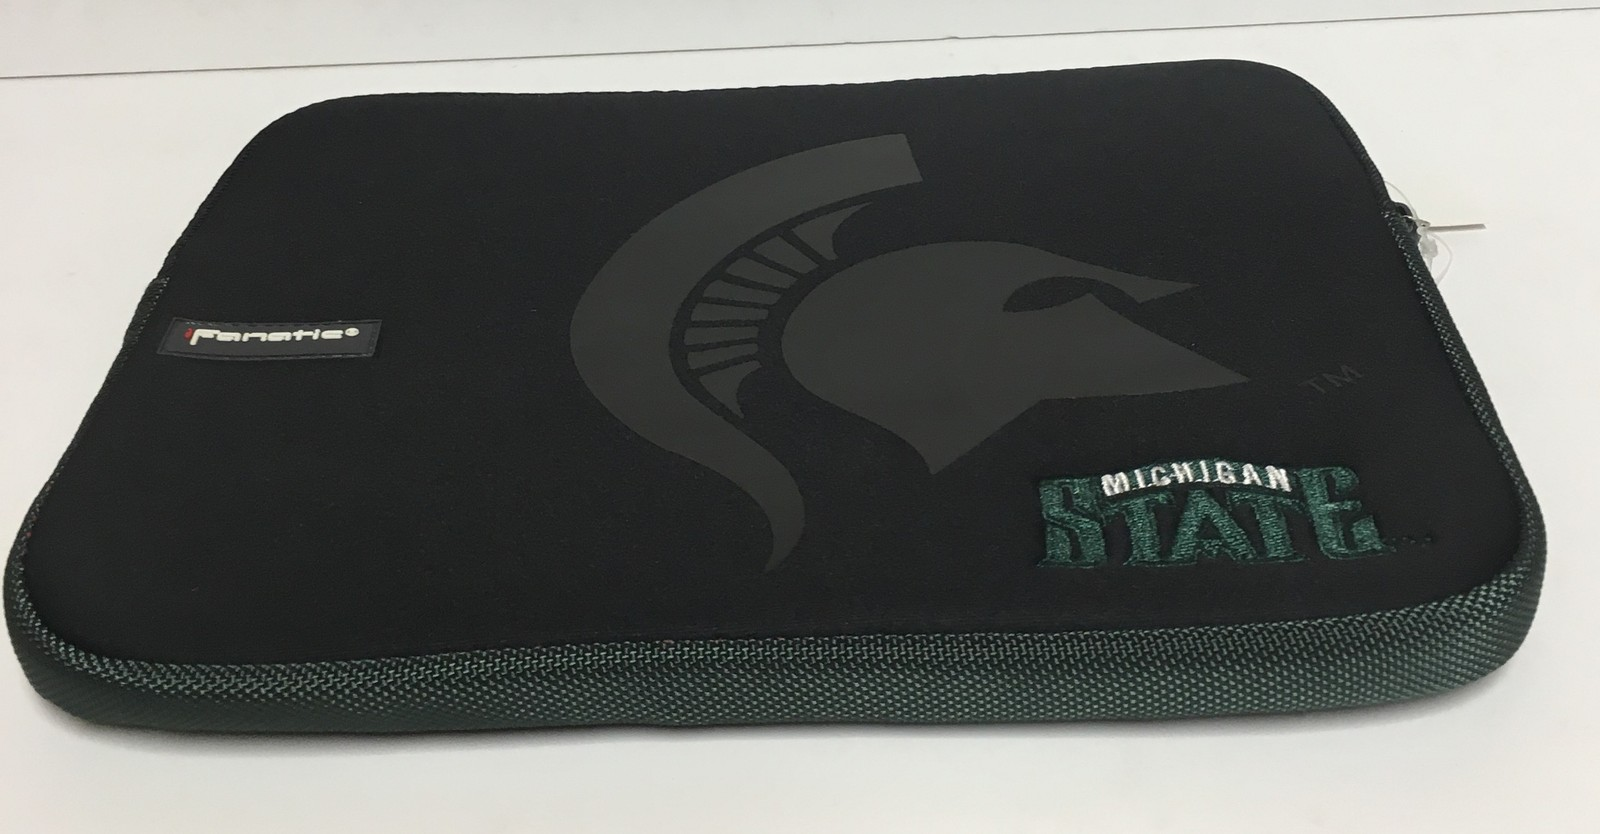 Michigan State University Logo Tablet Ipad Laptop Protection Case by Fanatic